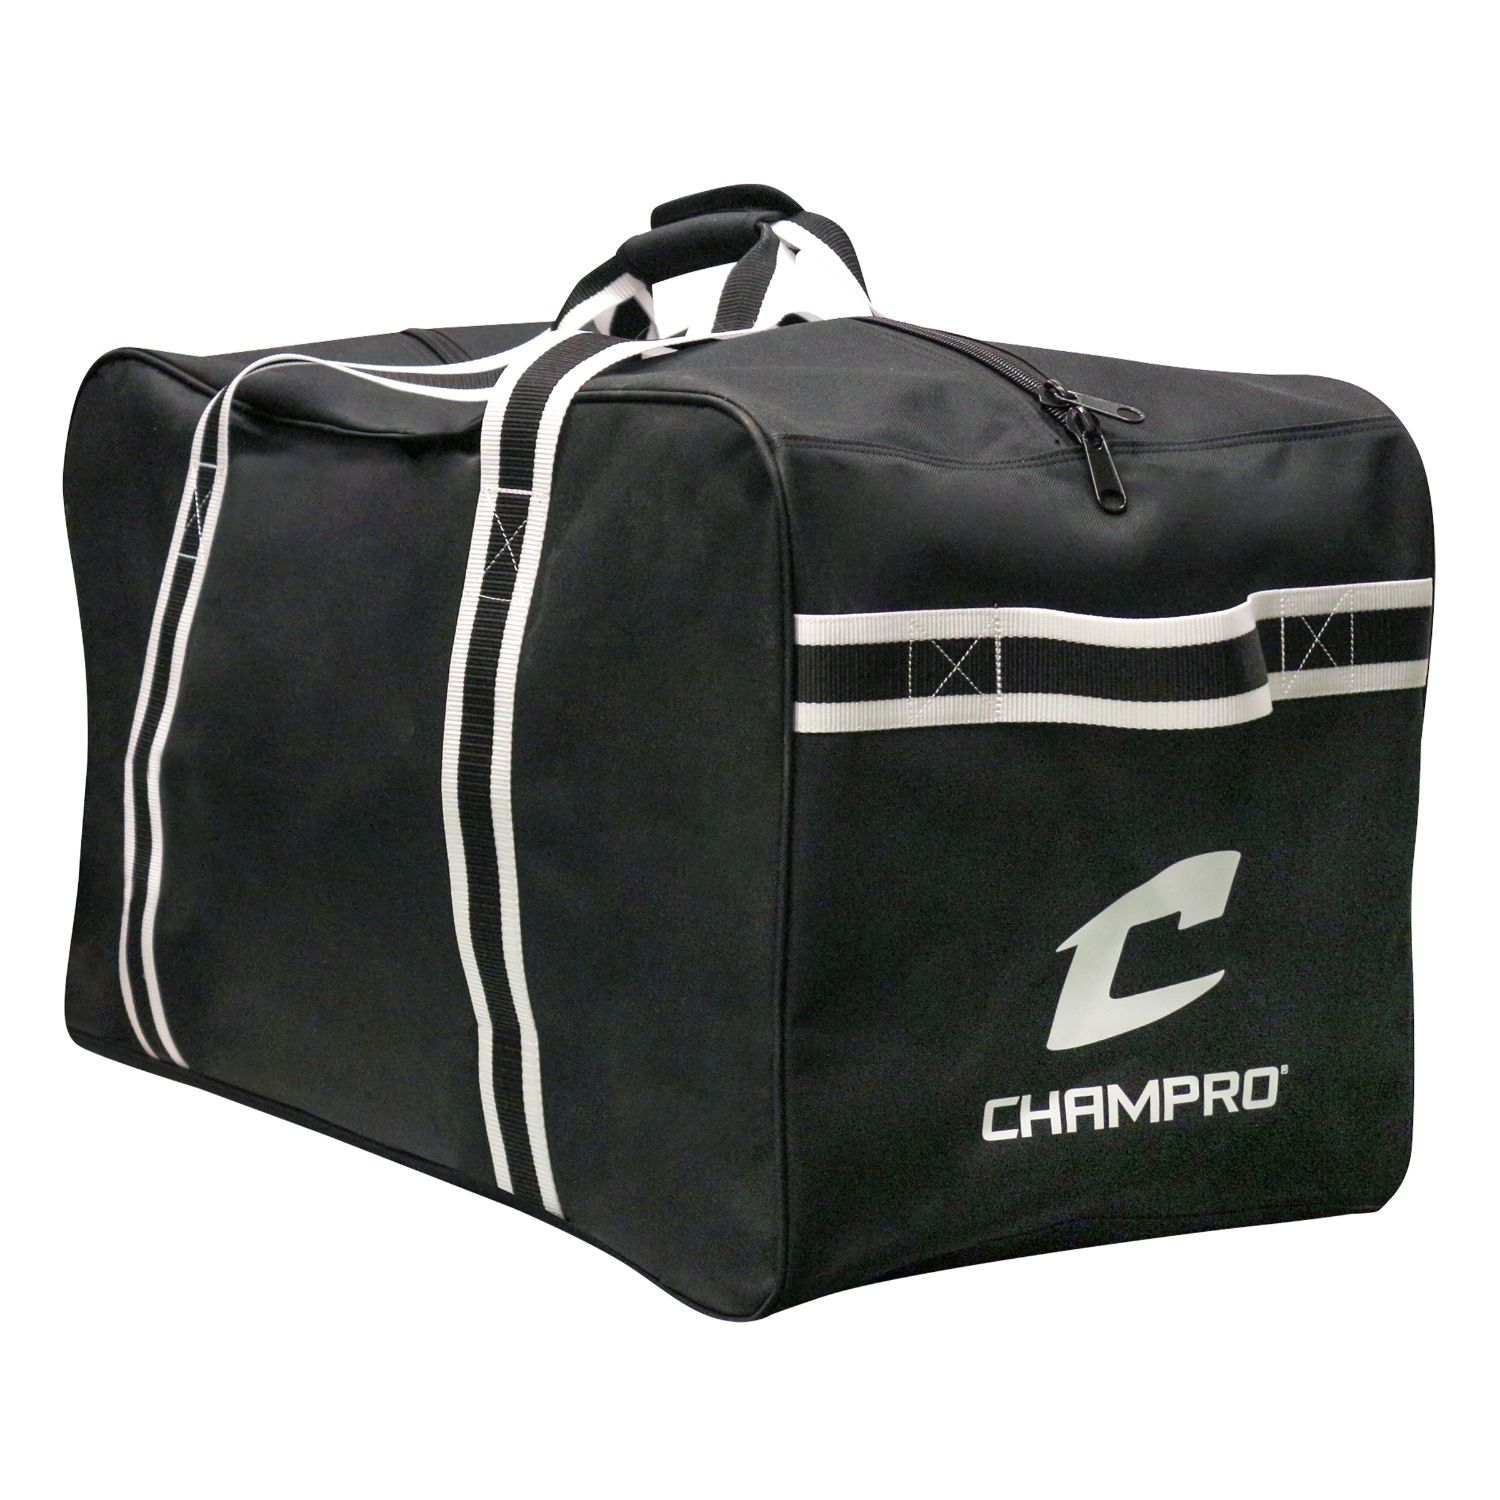 Champro Hockey Carry Bag Black Large